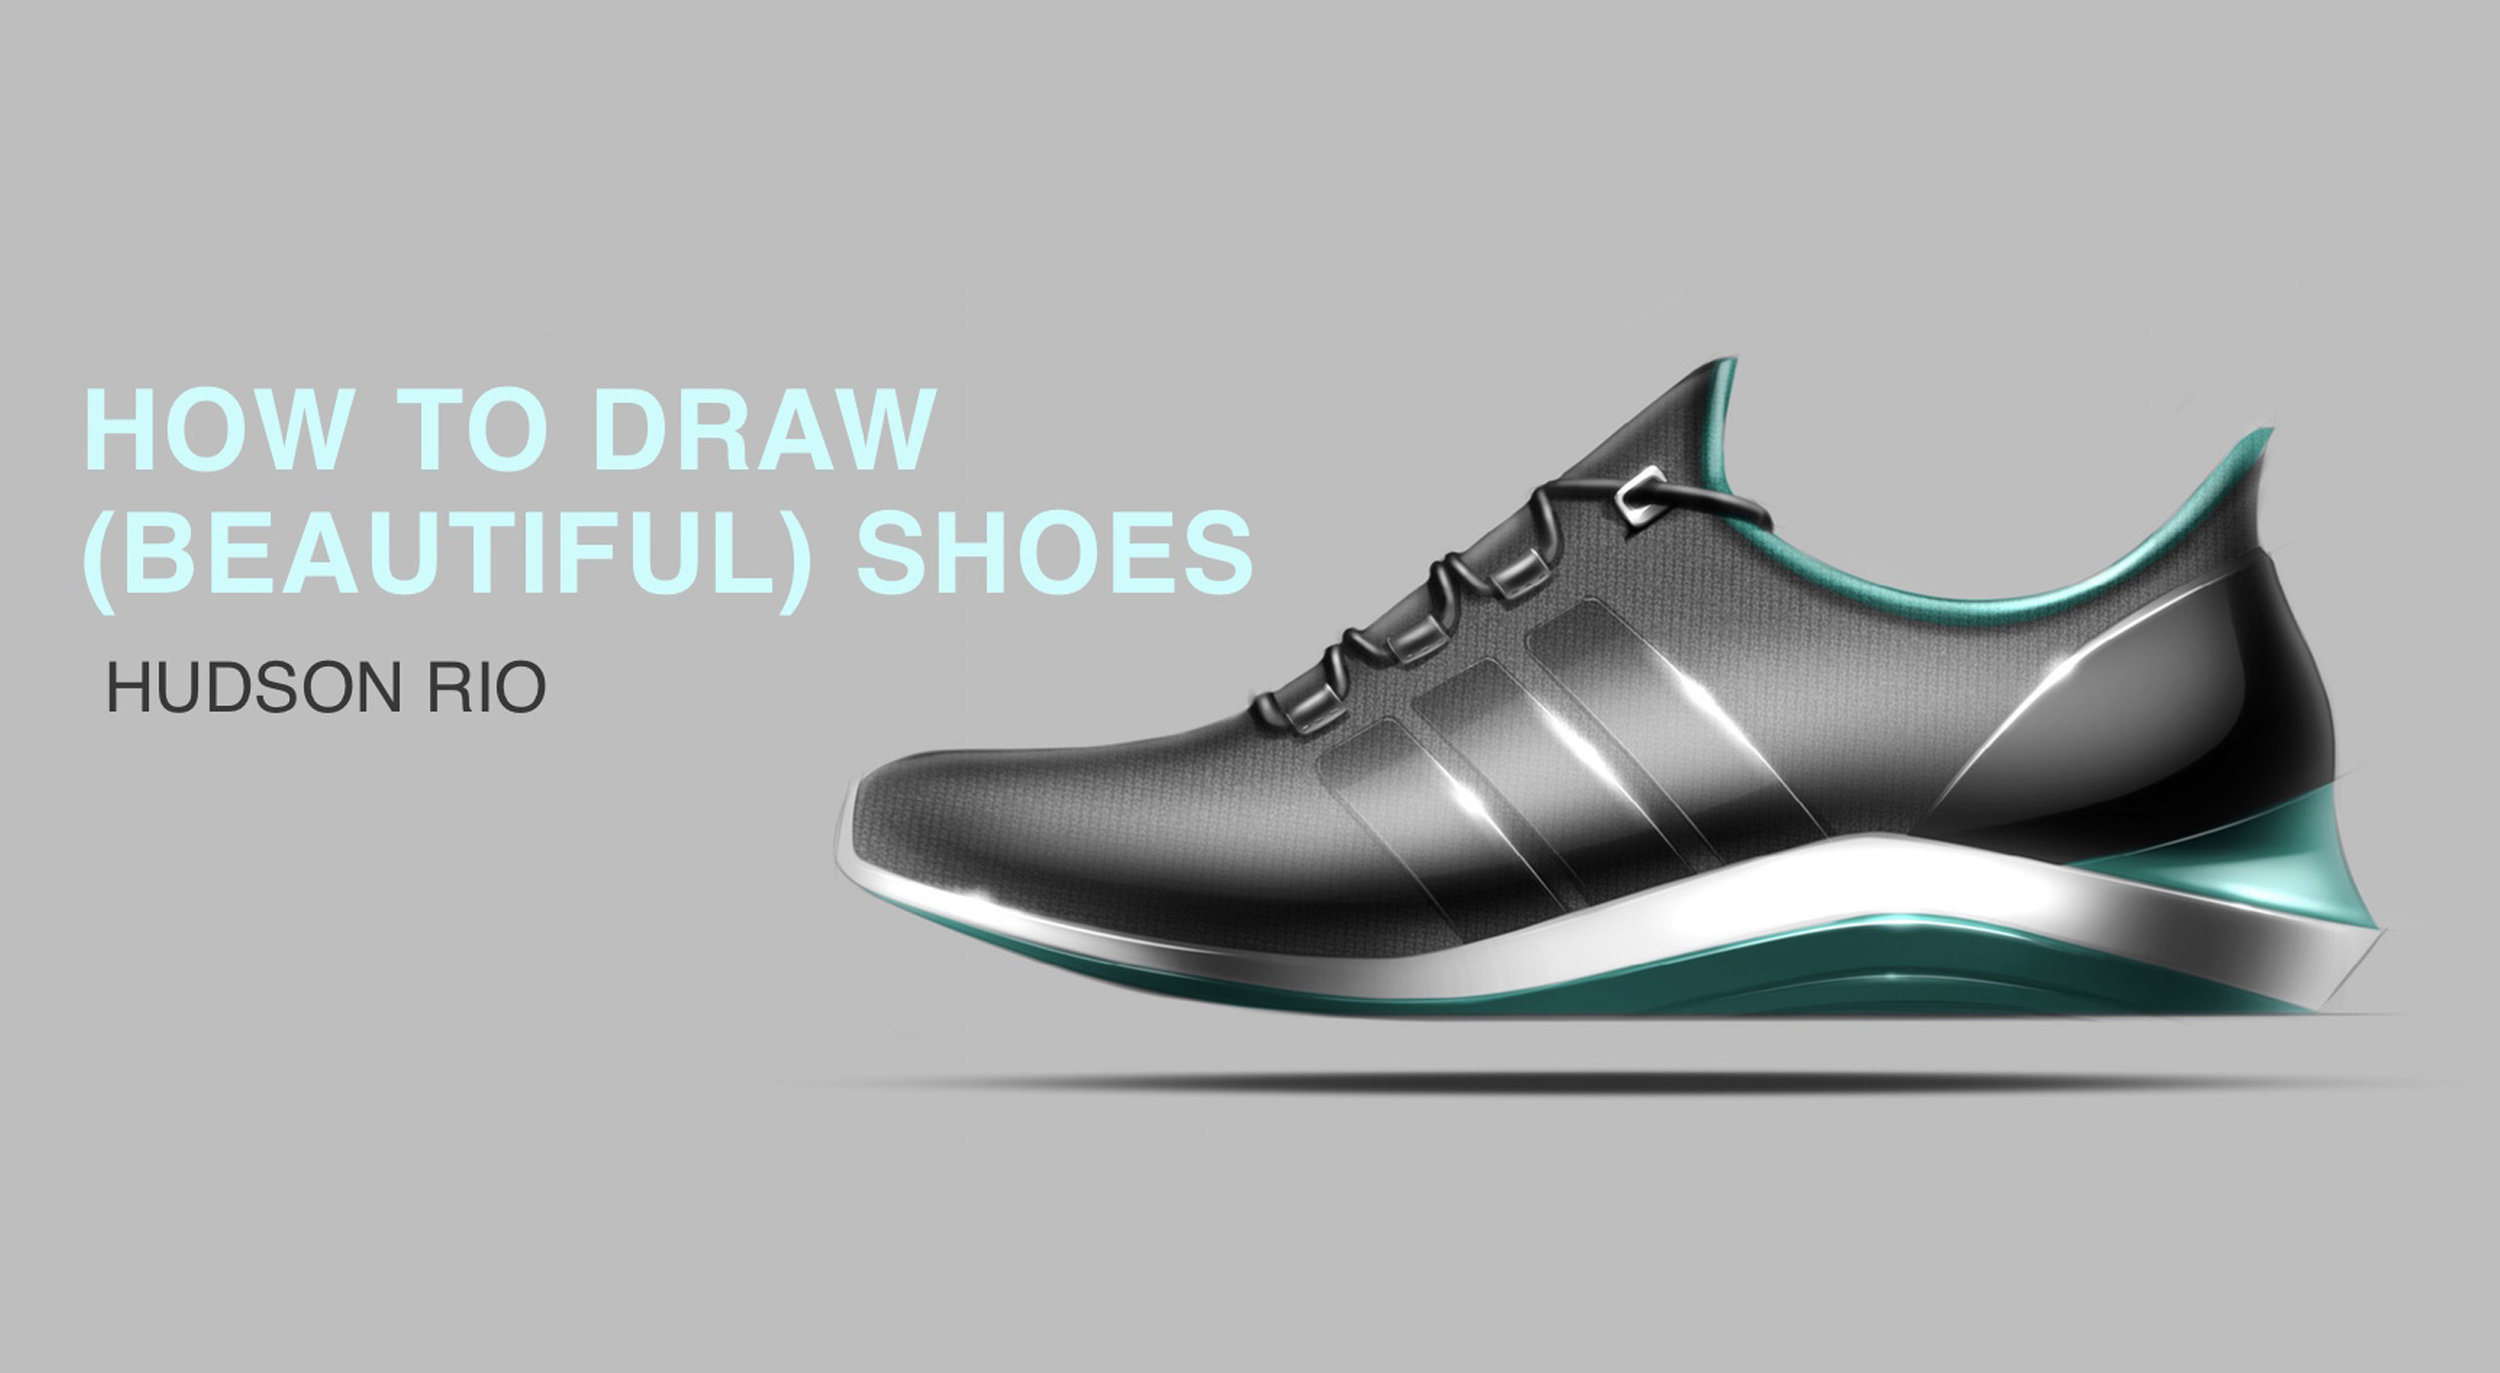 Shoe Tutorial - See my step-by-step process from thumbnail sketch to final render.